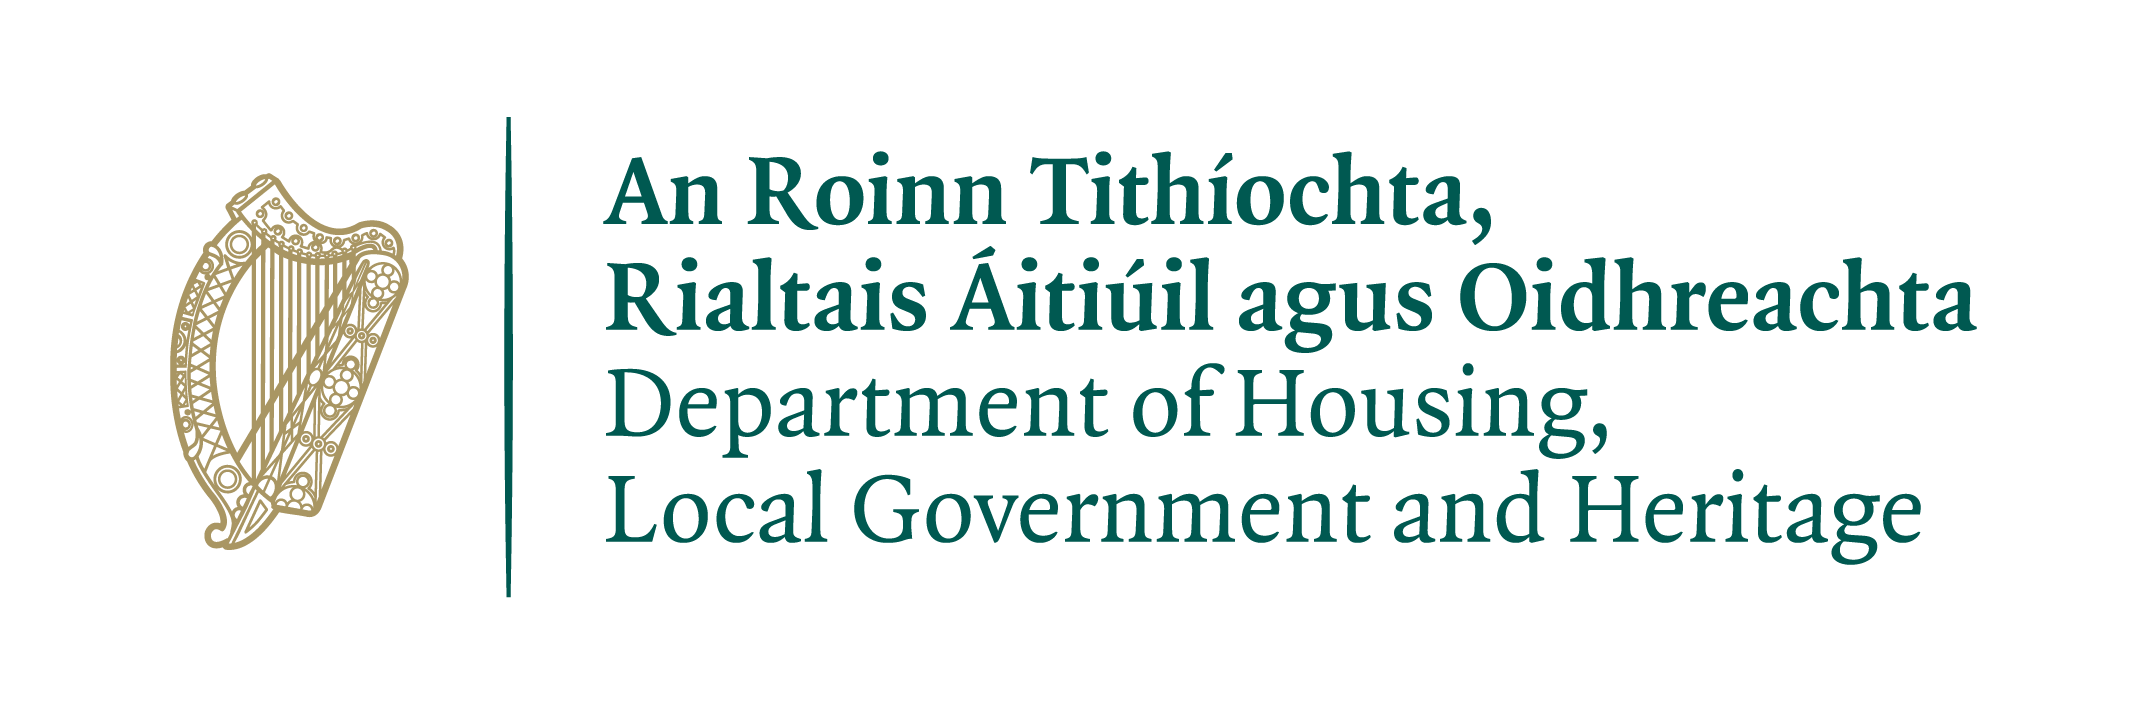 department-of-housing-local-government-and-heritage